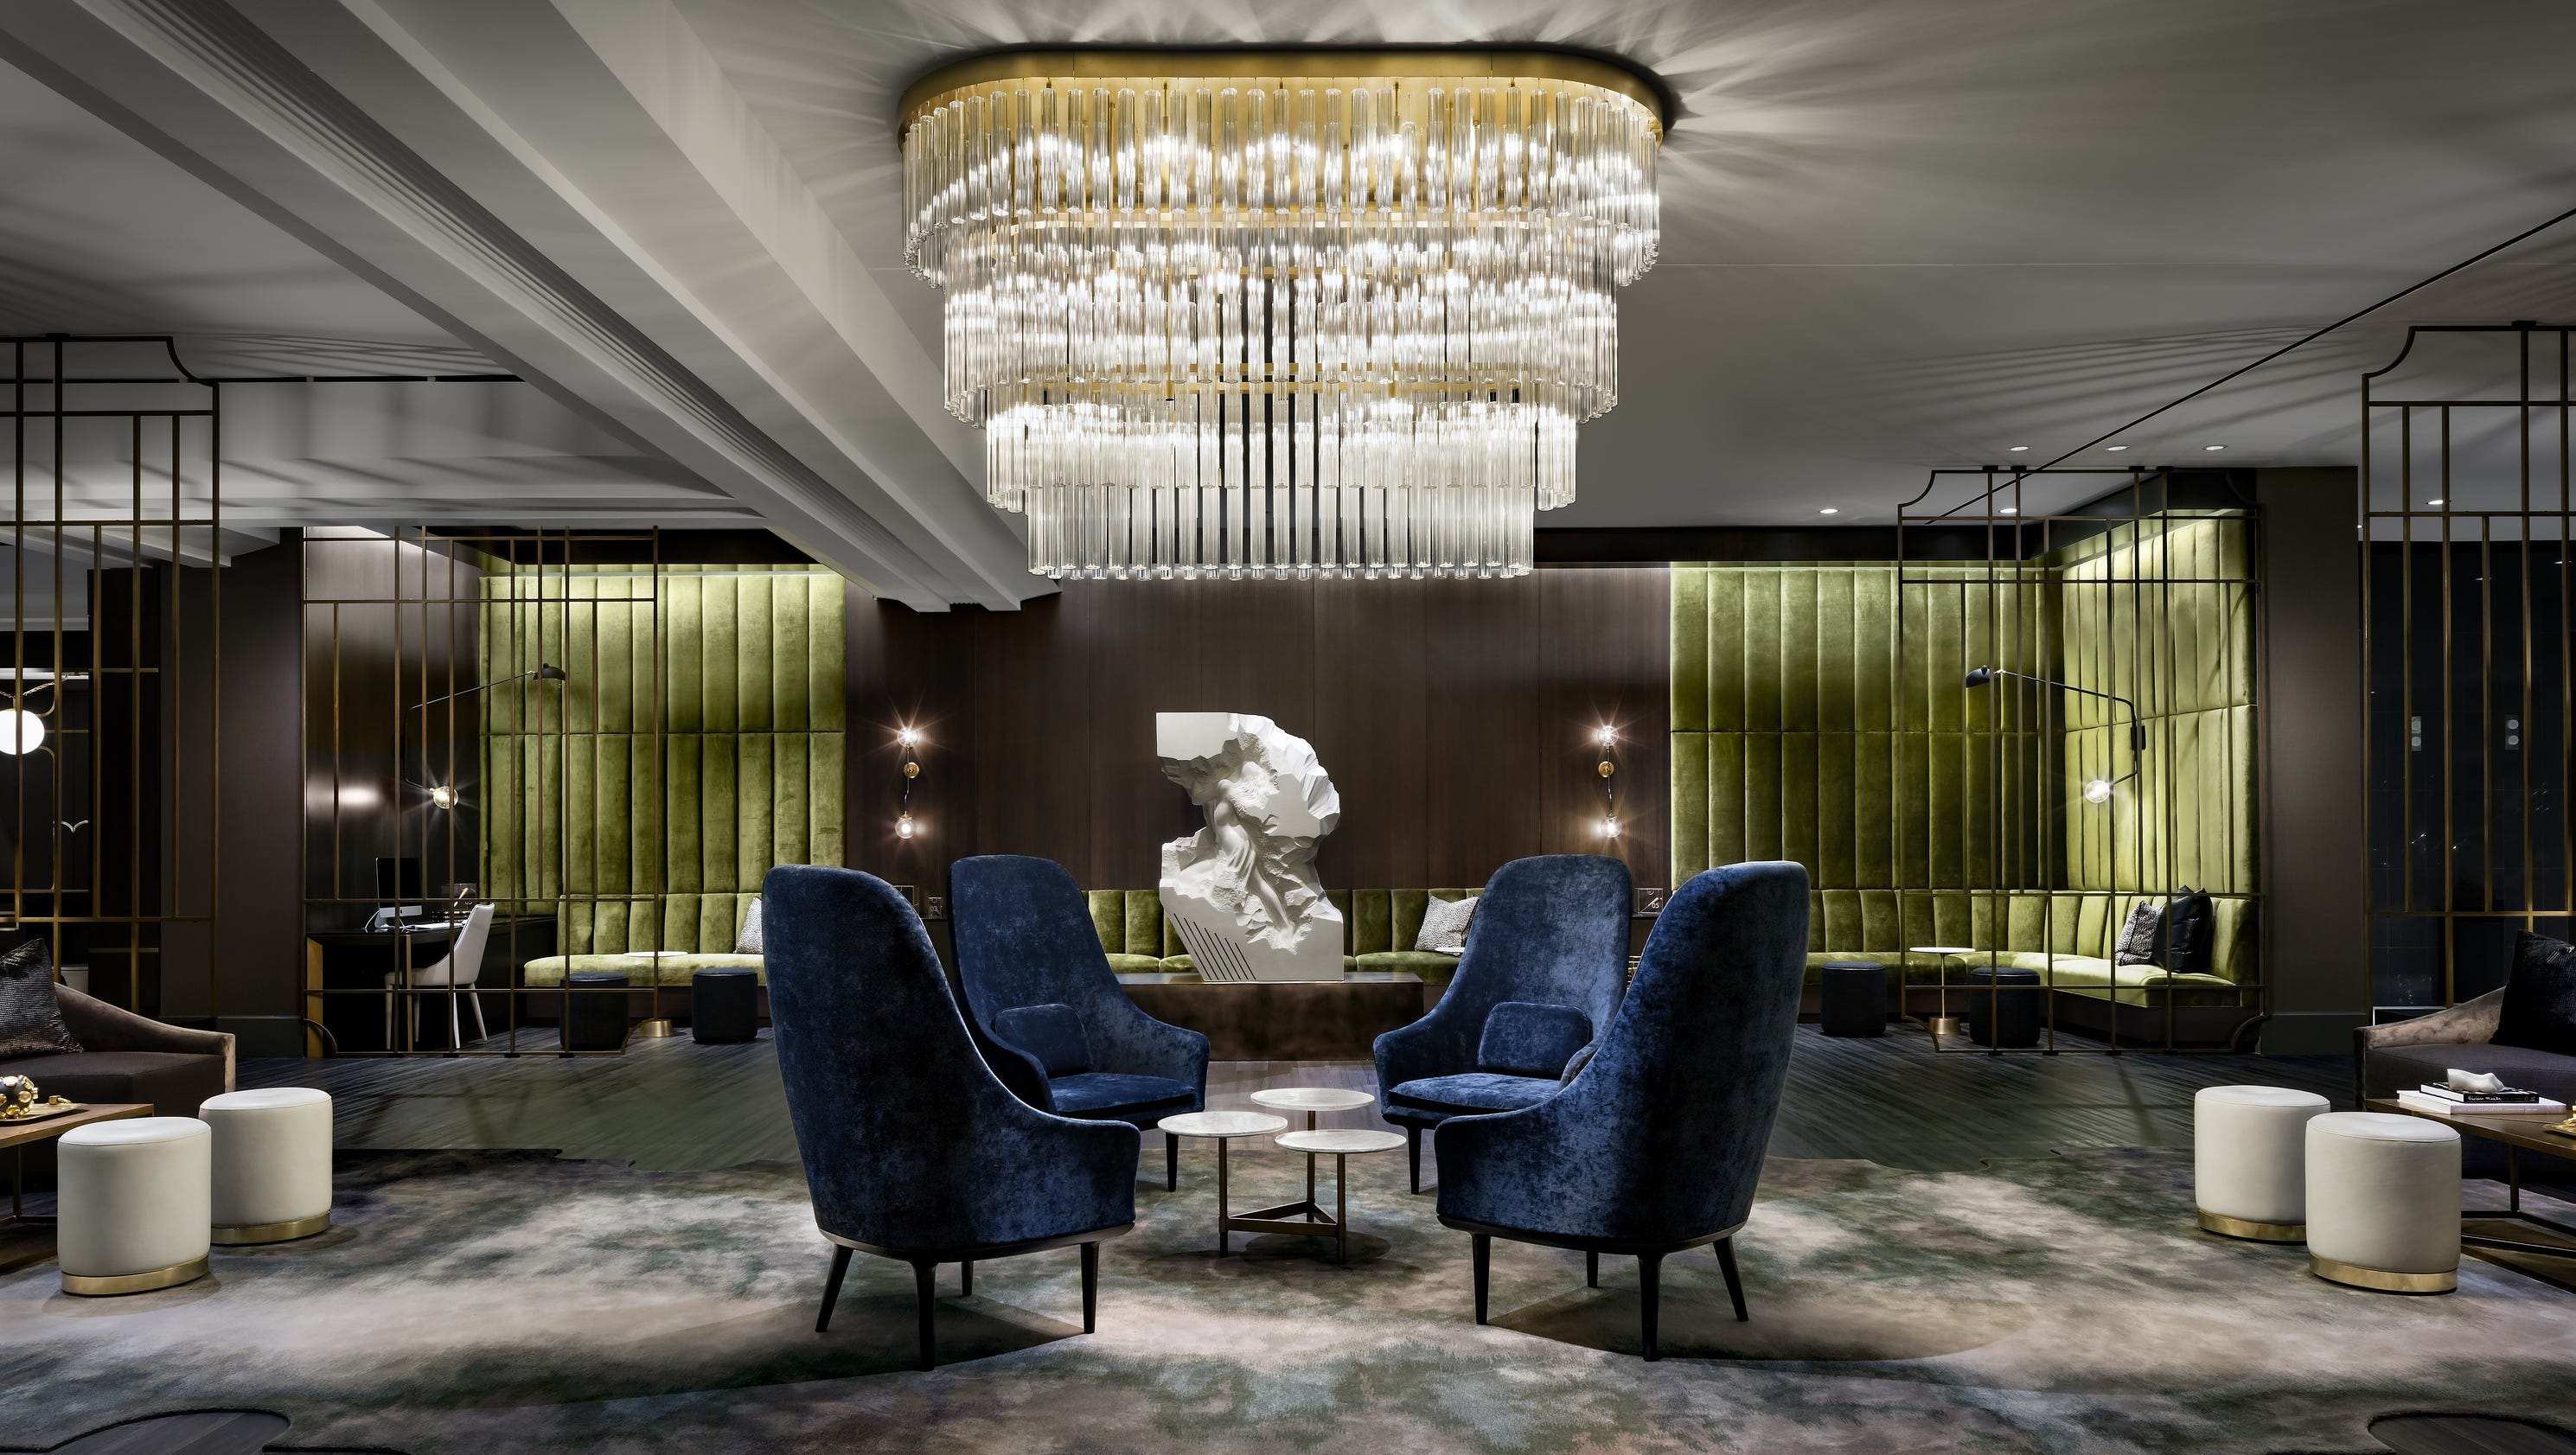 July roundup a look at the latest hotel renovations - Credot ilot centraal ...